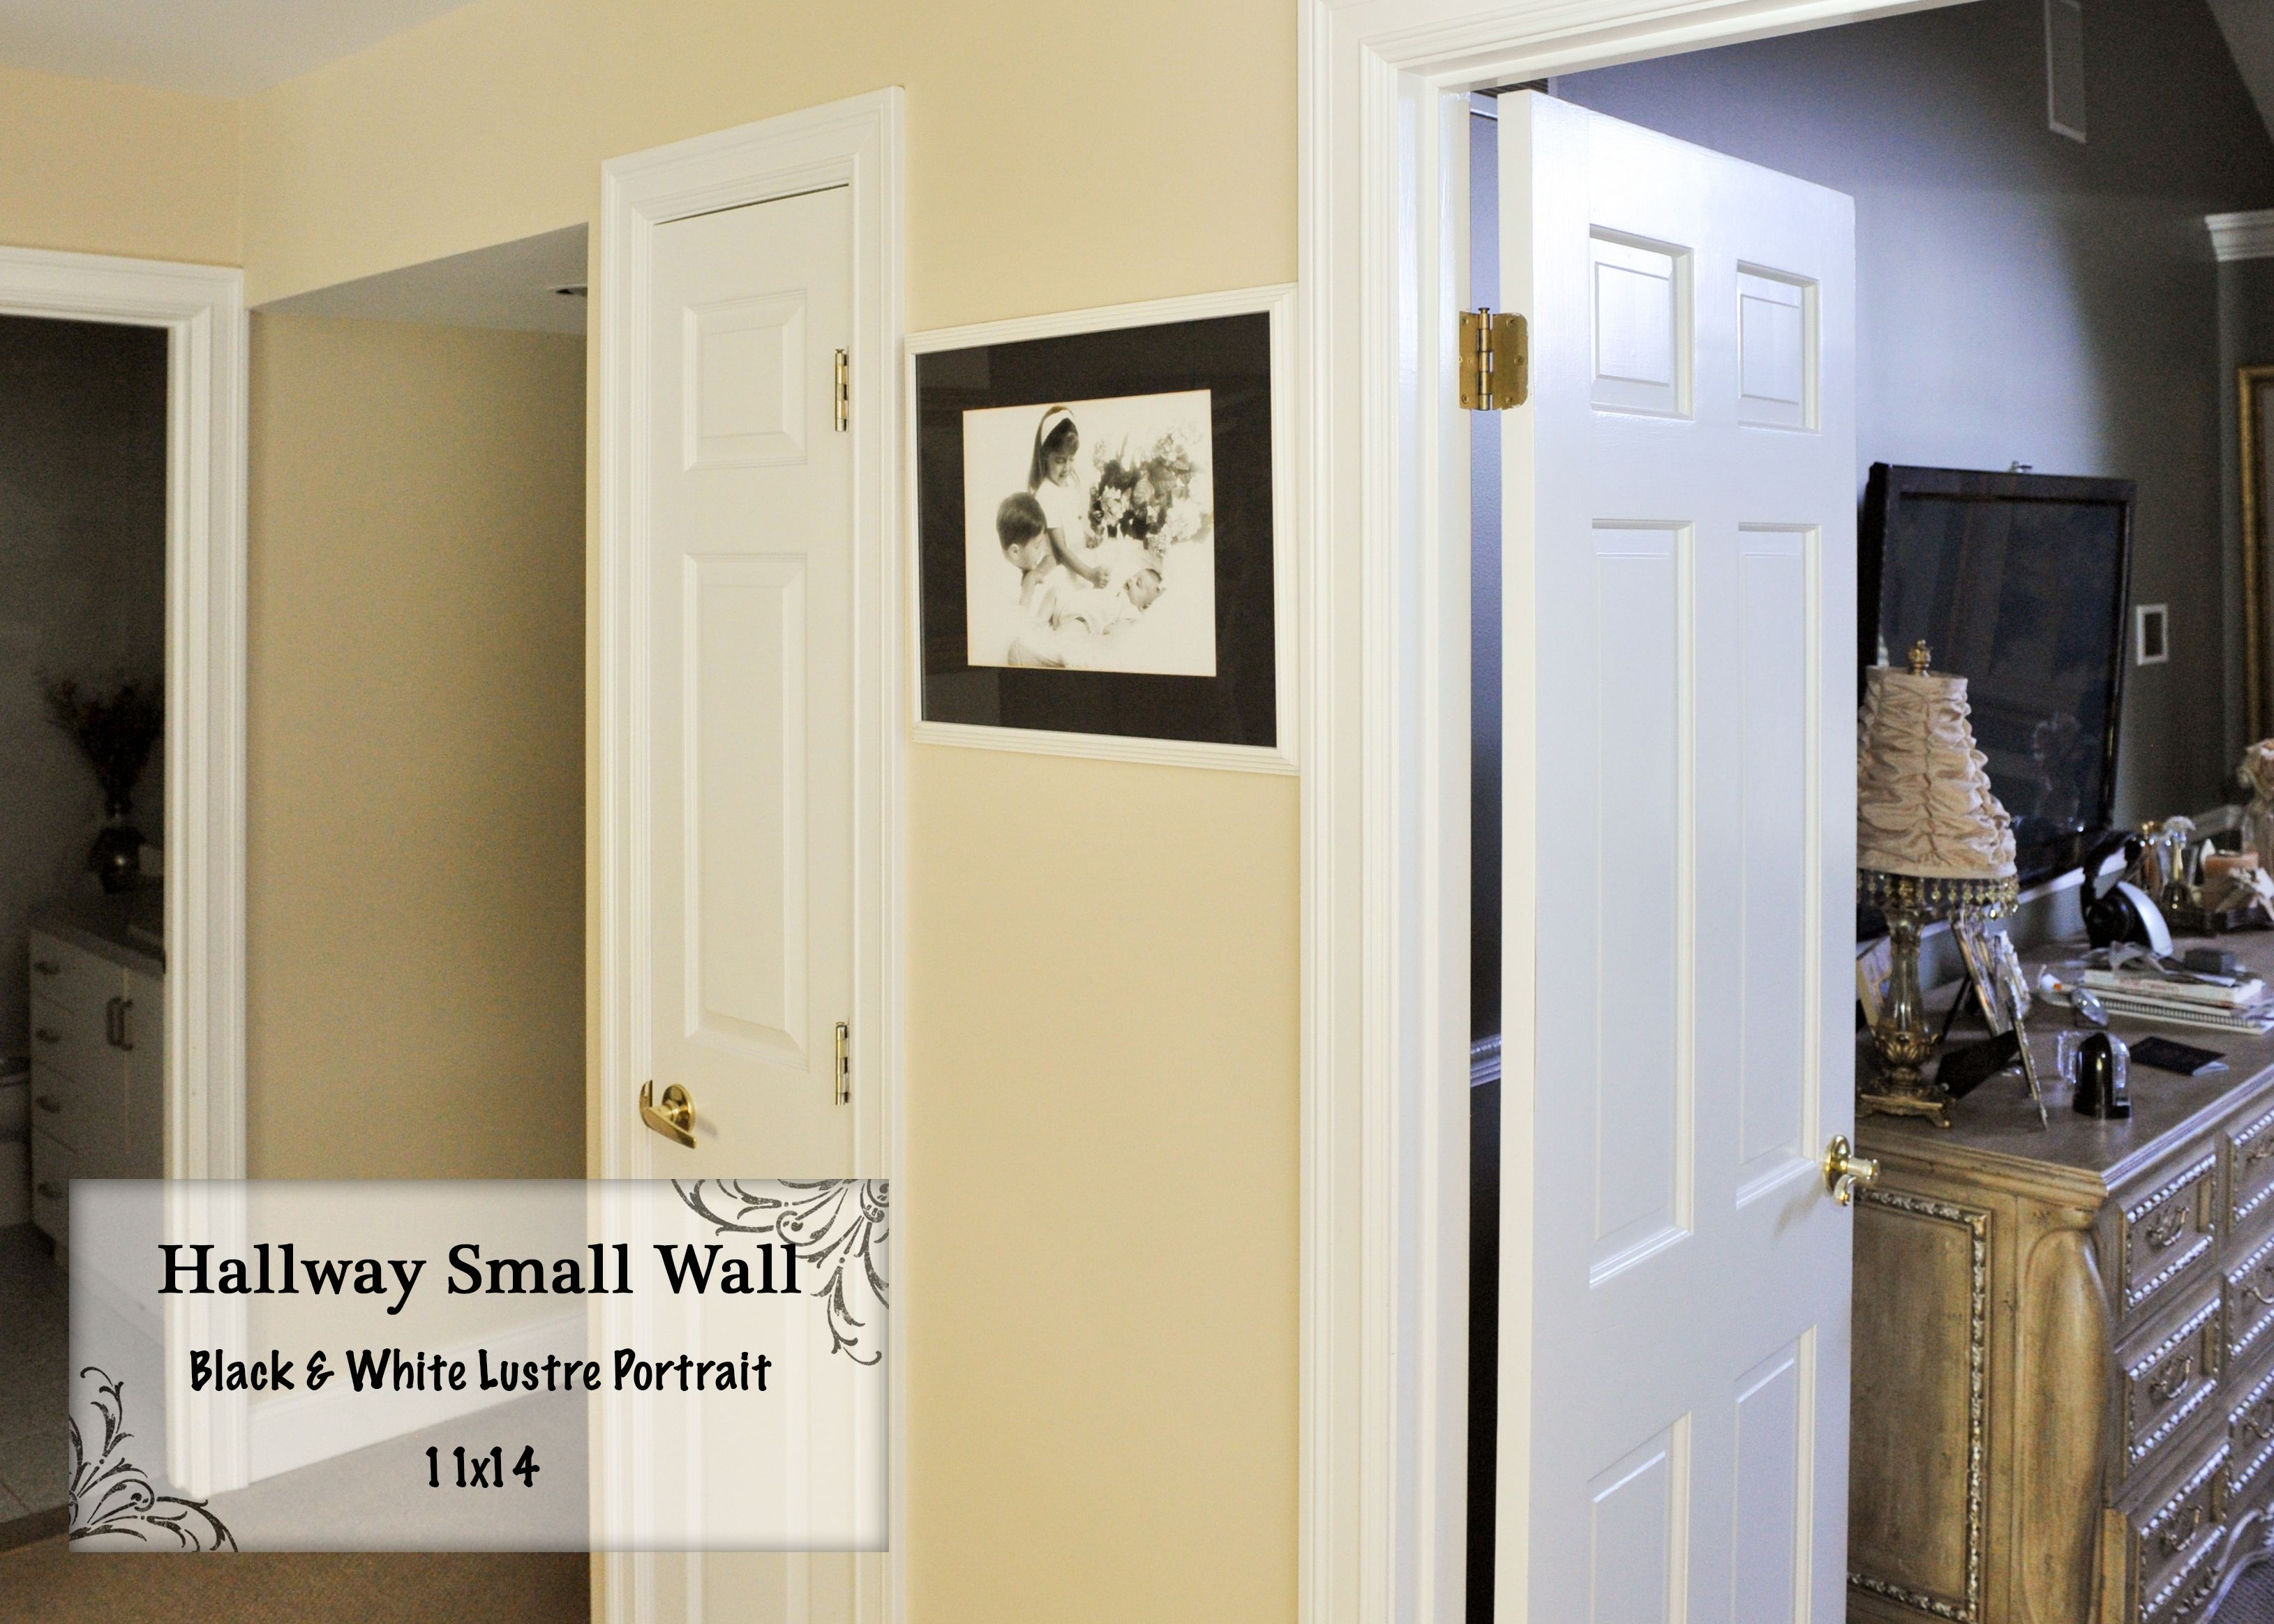 I Love To See How Our Customers Have Added Beauty And Sentiment To Their Home With The Portraits Short Str Street Photographers Small Wall Tall Cabinet Storage